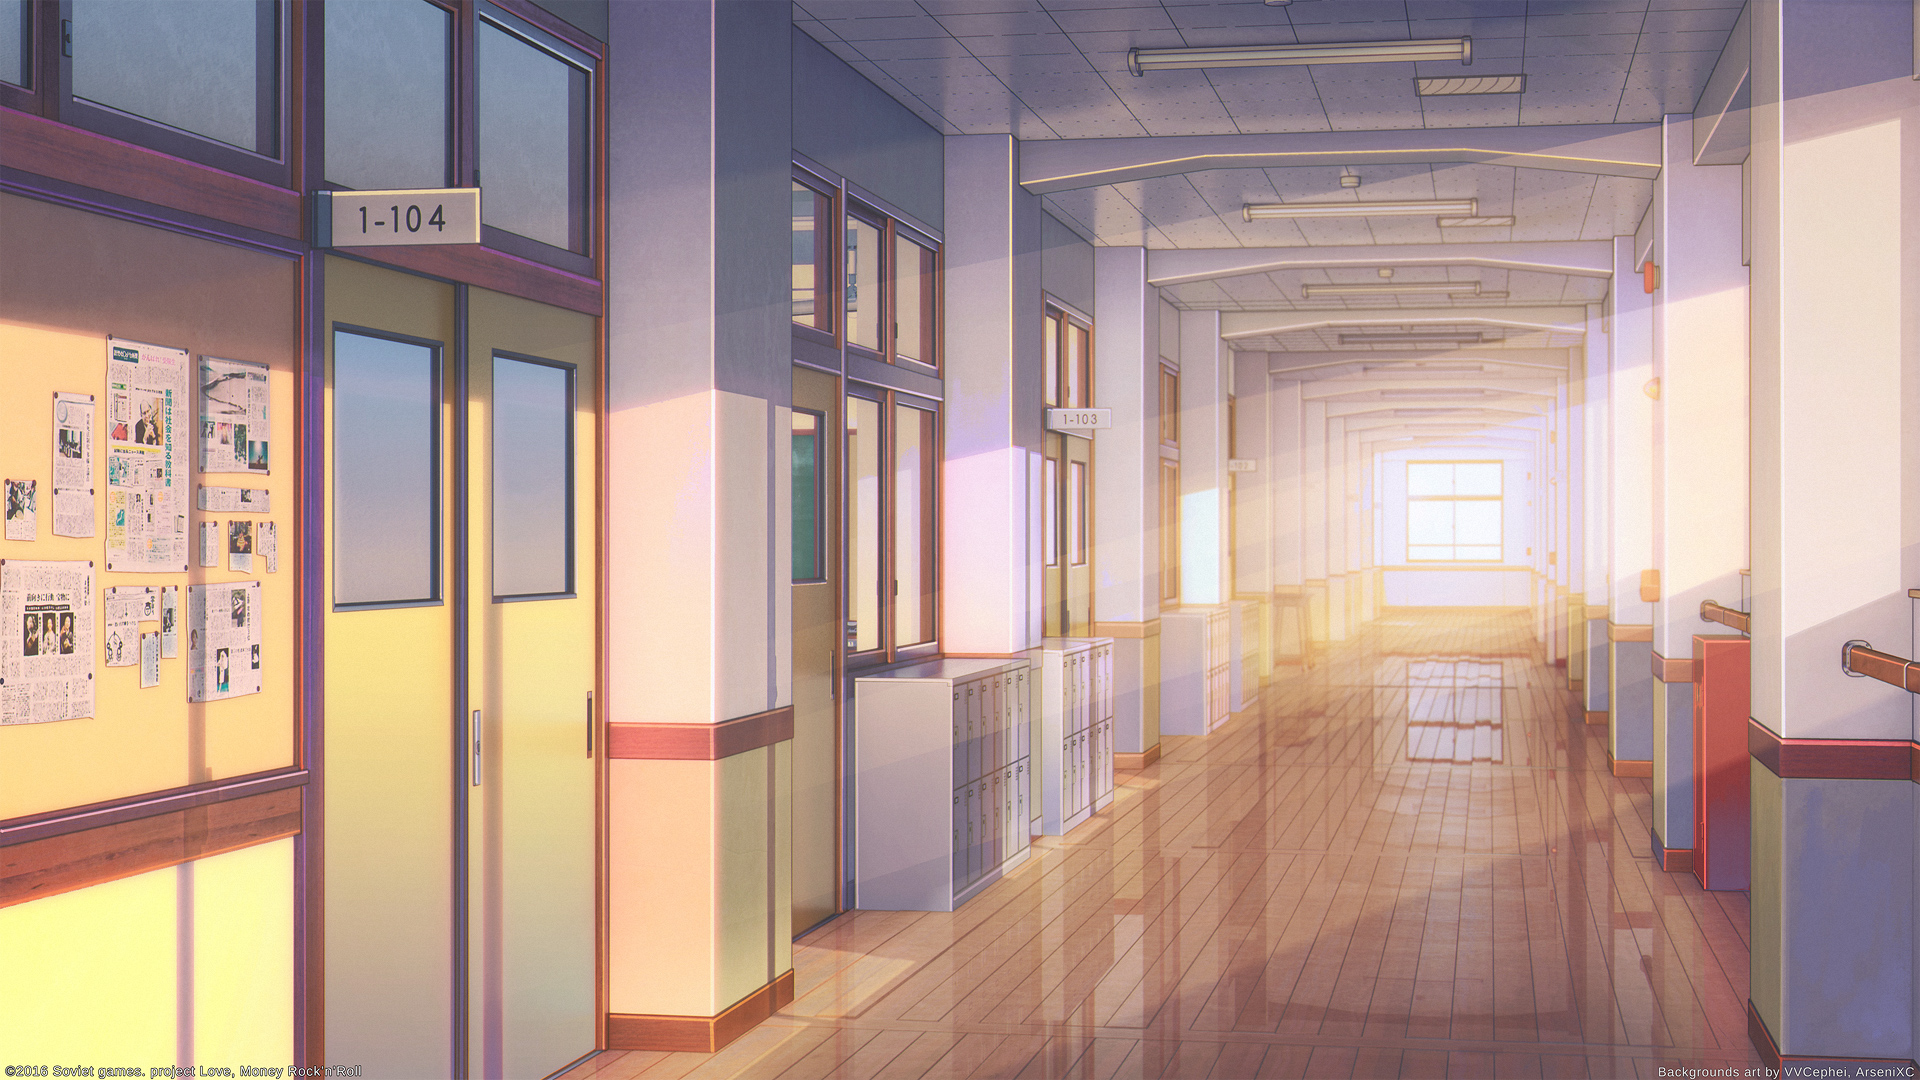 Inside Collaborative Classroom ~ Arsenixc wallpaper zerochan anime image board